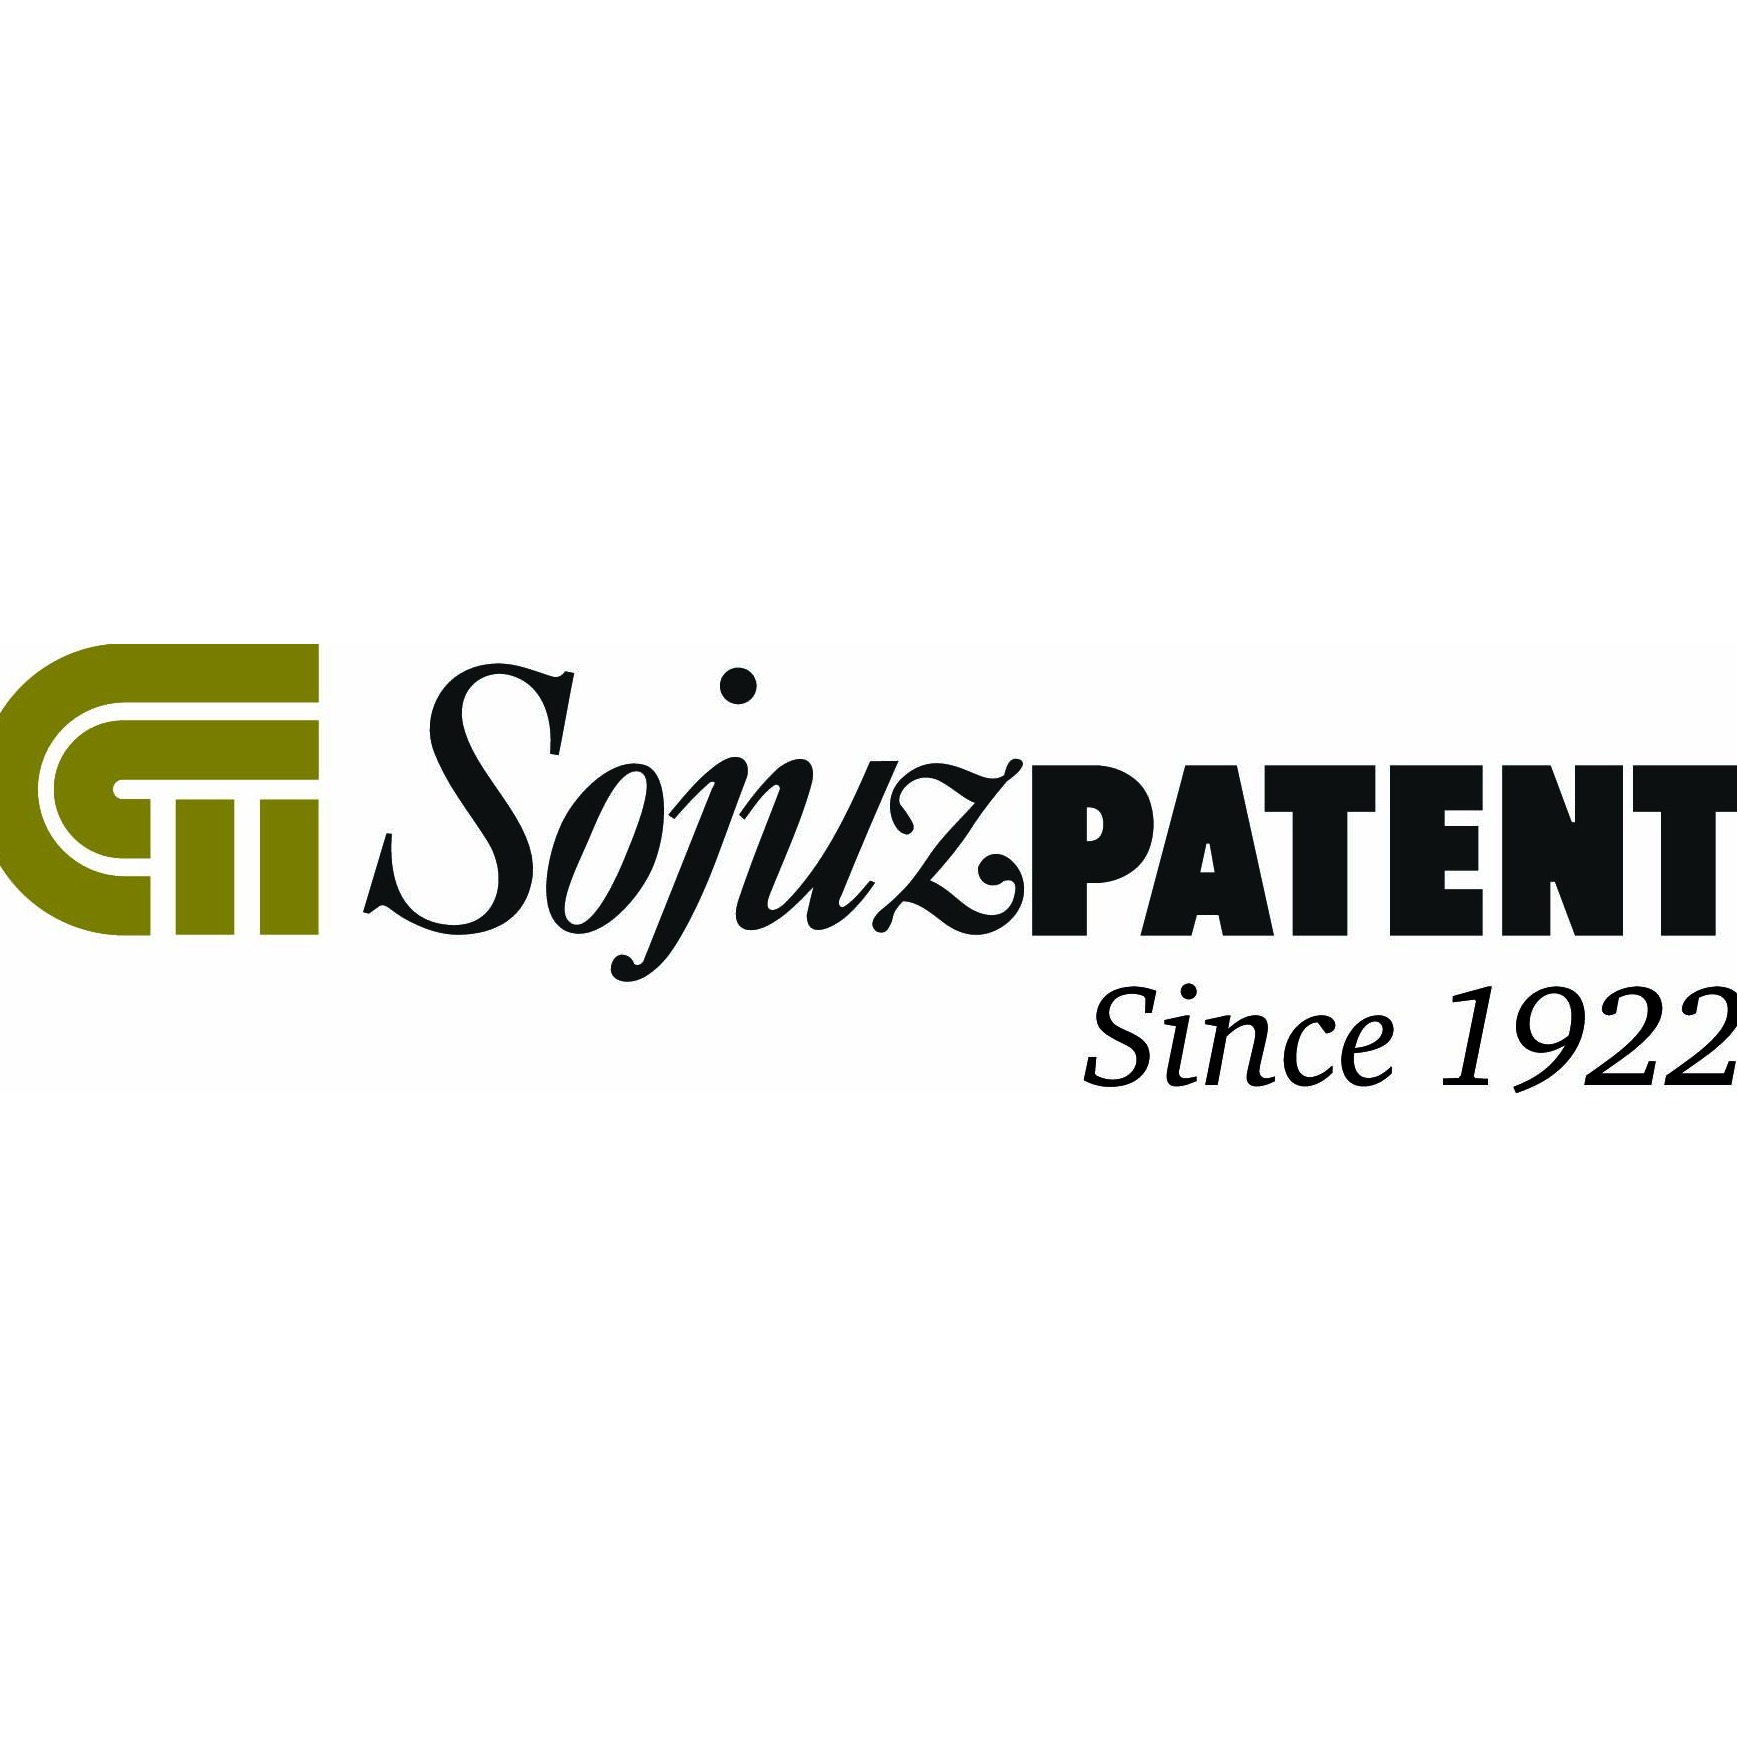 the Sojuzpatent logo.